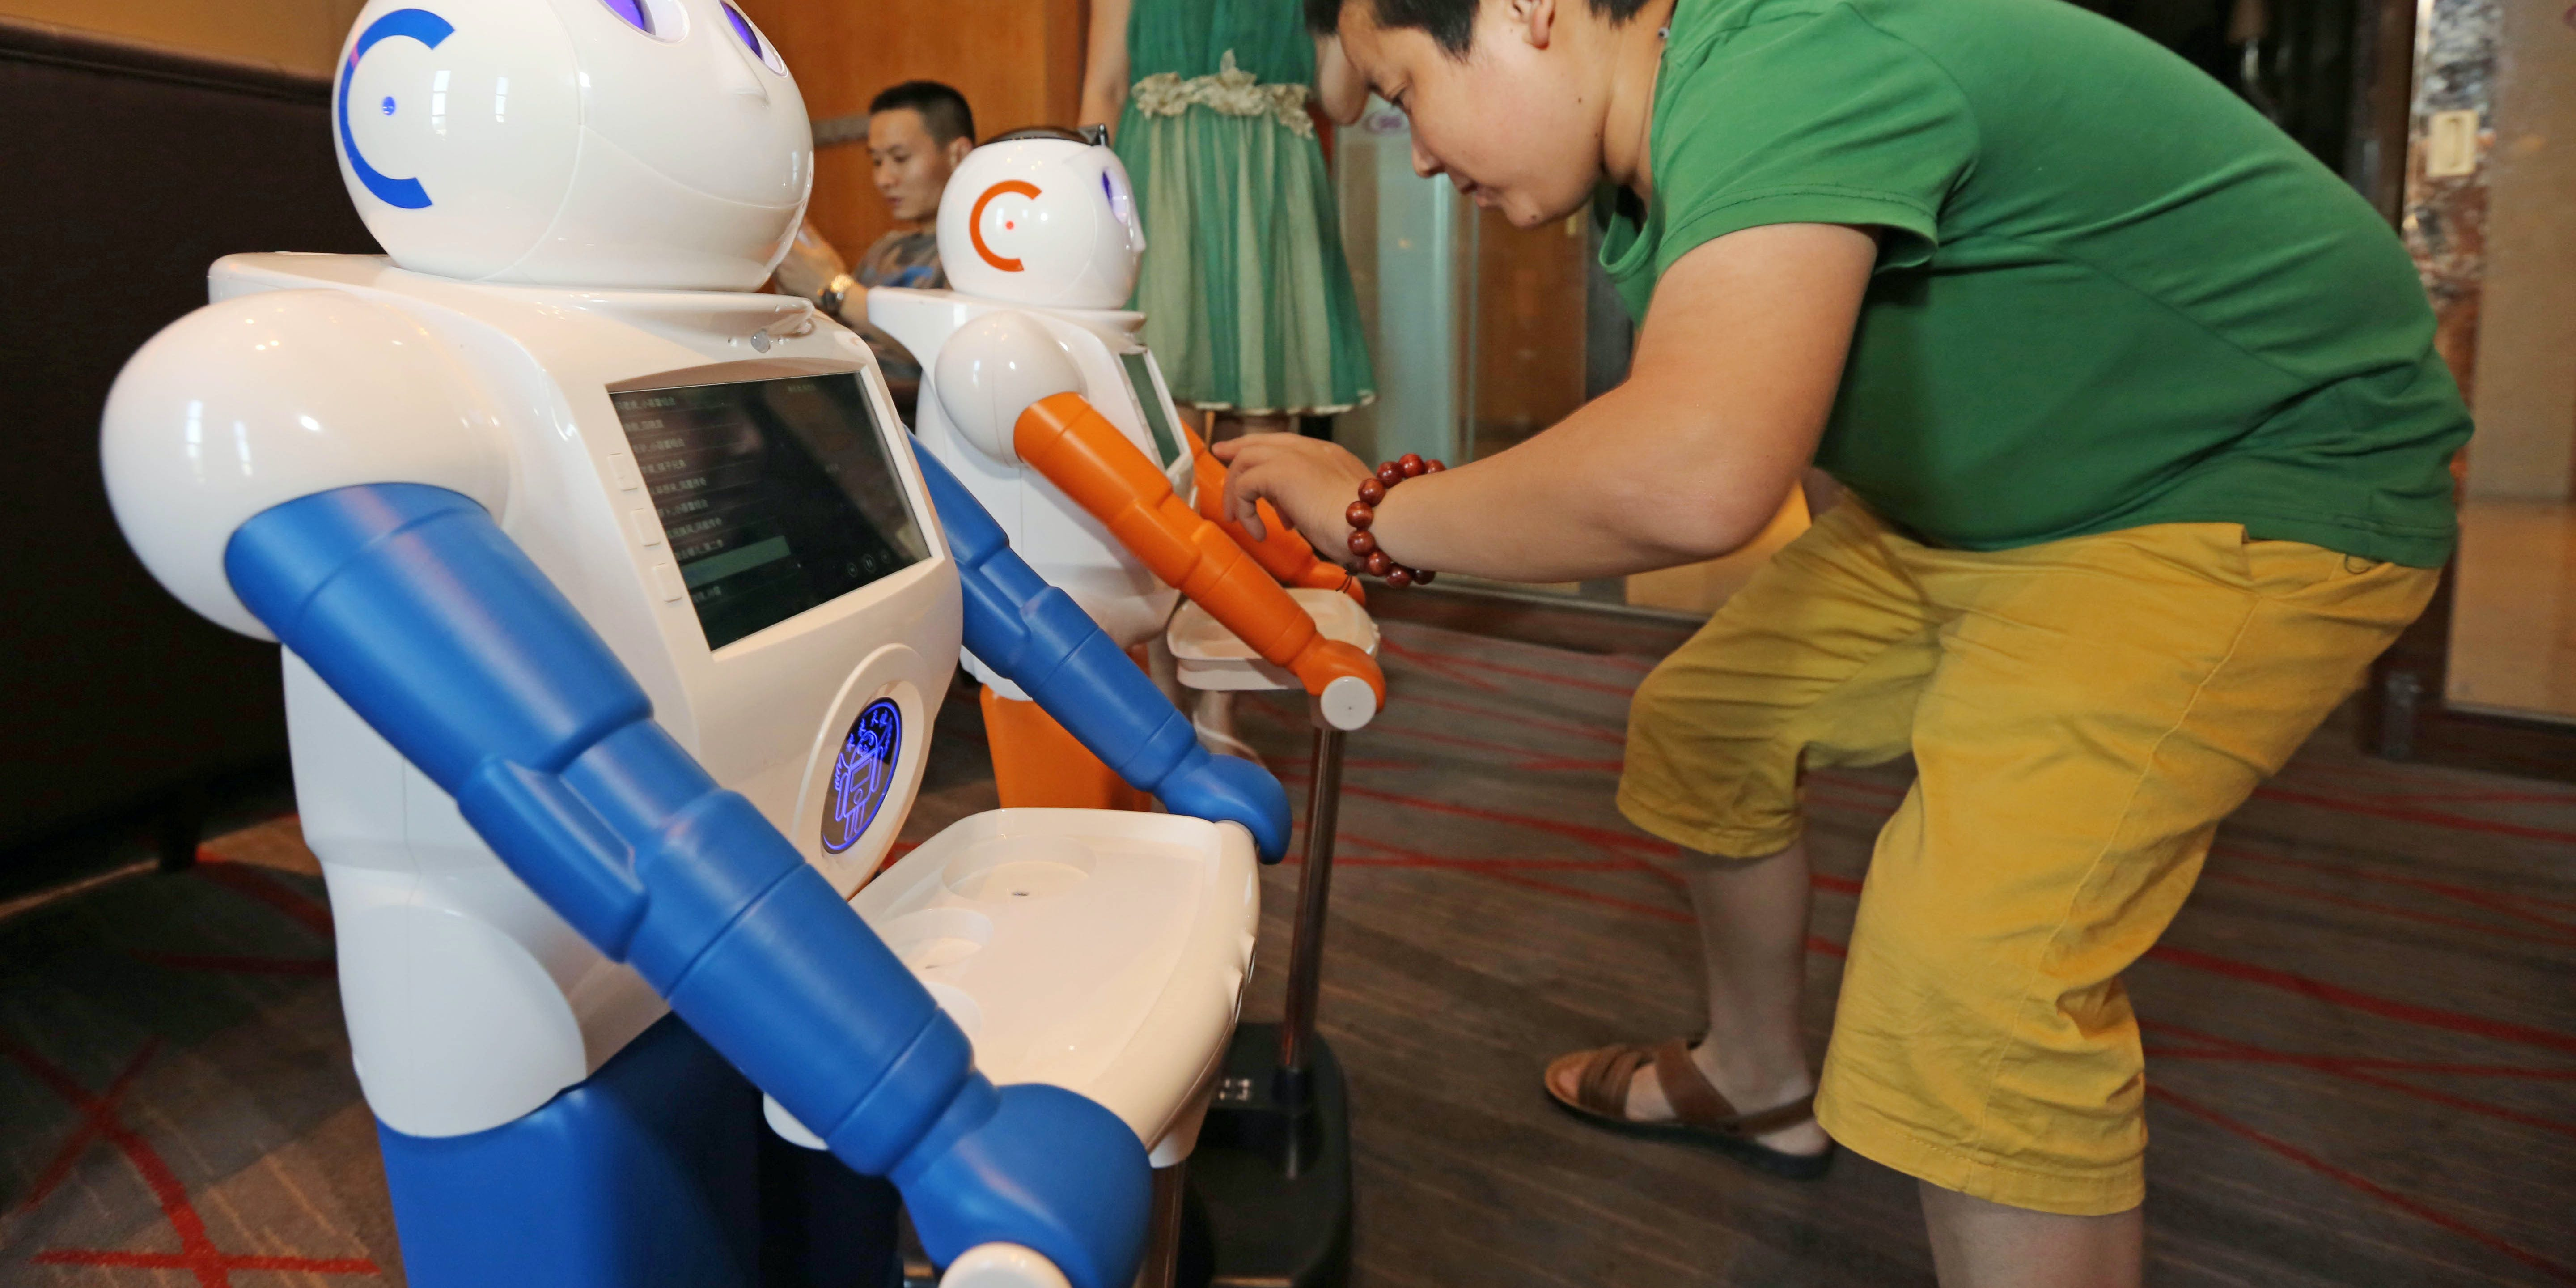 XIANGYANG, CHINA - JUNE 16: (CHINA OUT) A customer touches screen of an artificial intelligent robot at a technological product store on June 16, 2016 in Xiangyang, Hubei Province of China. The robot not only can interact with people but also complete specific assignments according to orders. (Photo by VCG/VCG via Getty Images)